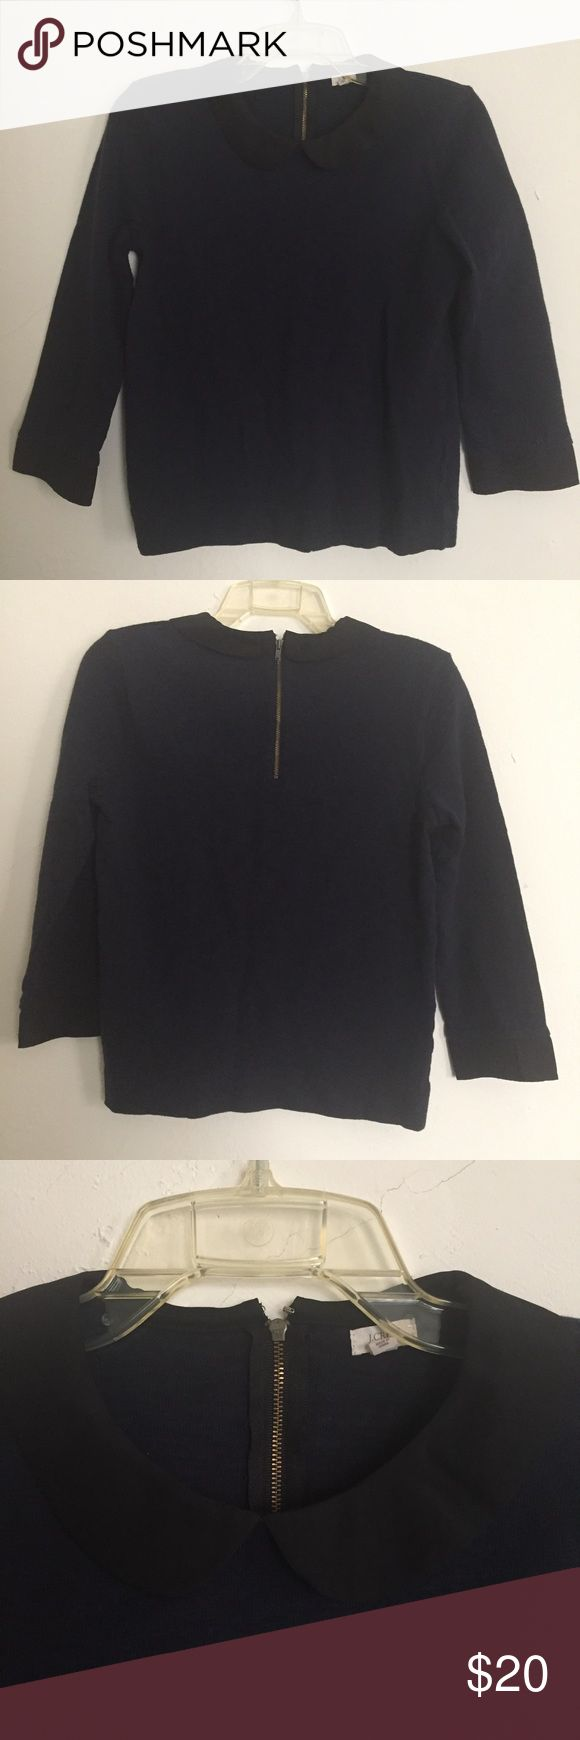 """J Crew collared navy blue Top J Crew collar top -navy blue with black collar and 3/4 sleeves -size small -EUC, no holes/stains   Measurements: Armpit to armpit ~17"""" Length ~22.5"""" Sleeve length ~19"""" J. Crew Tops Blouses"""